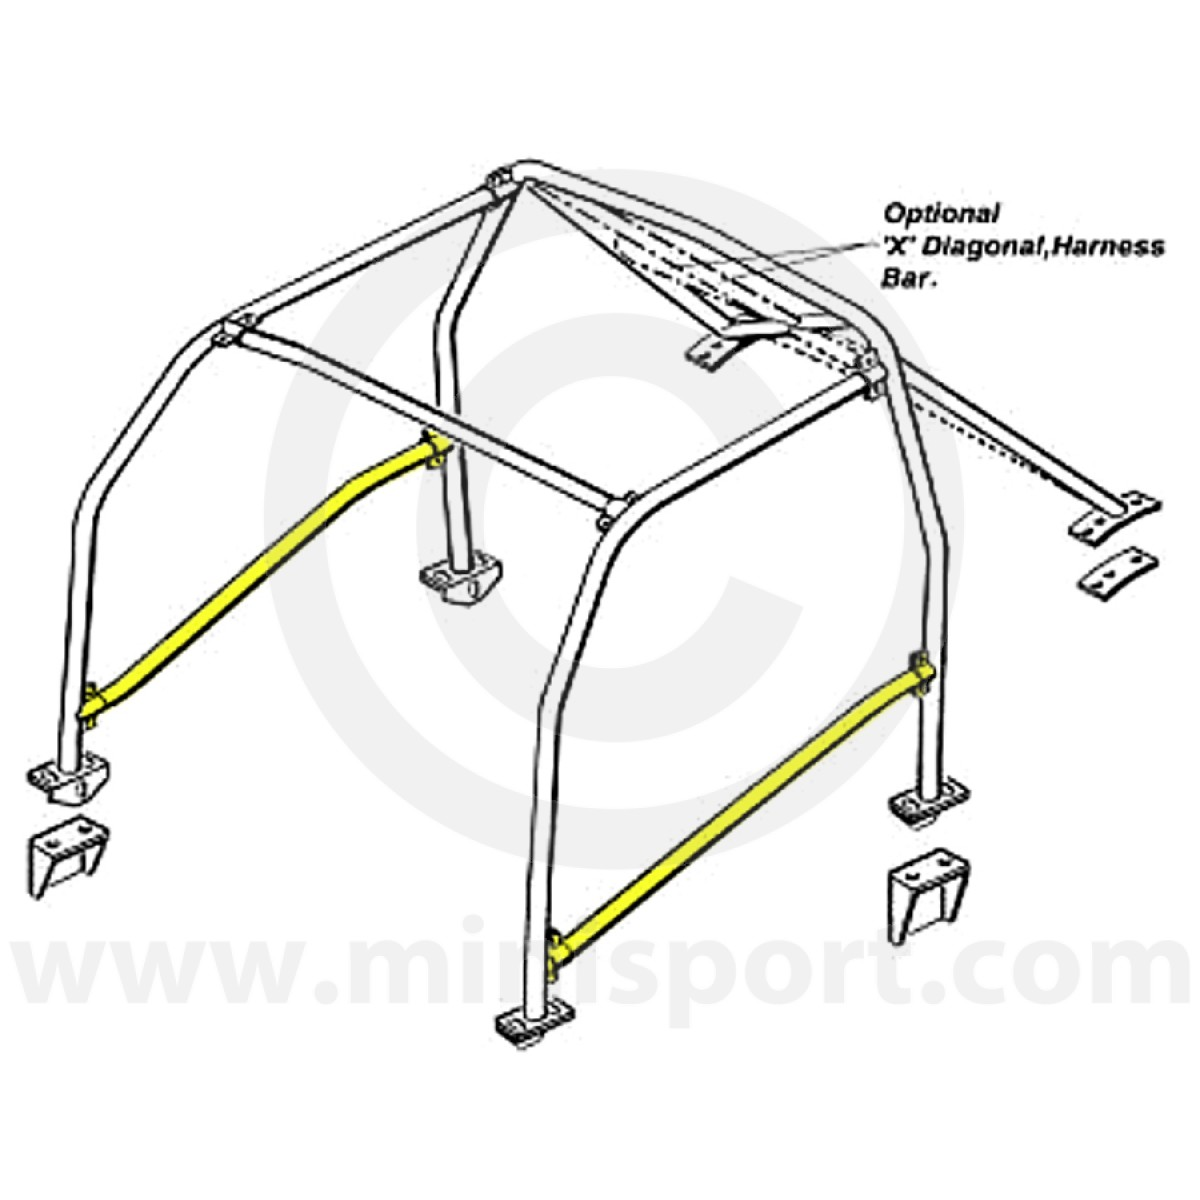 Rbn00a1 Mini Roll Cage Door Bar Safety Devices Mini Sport